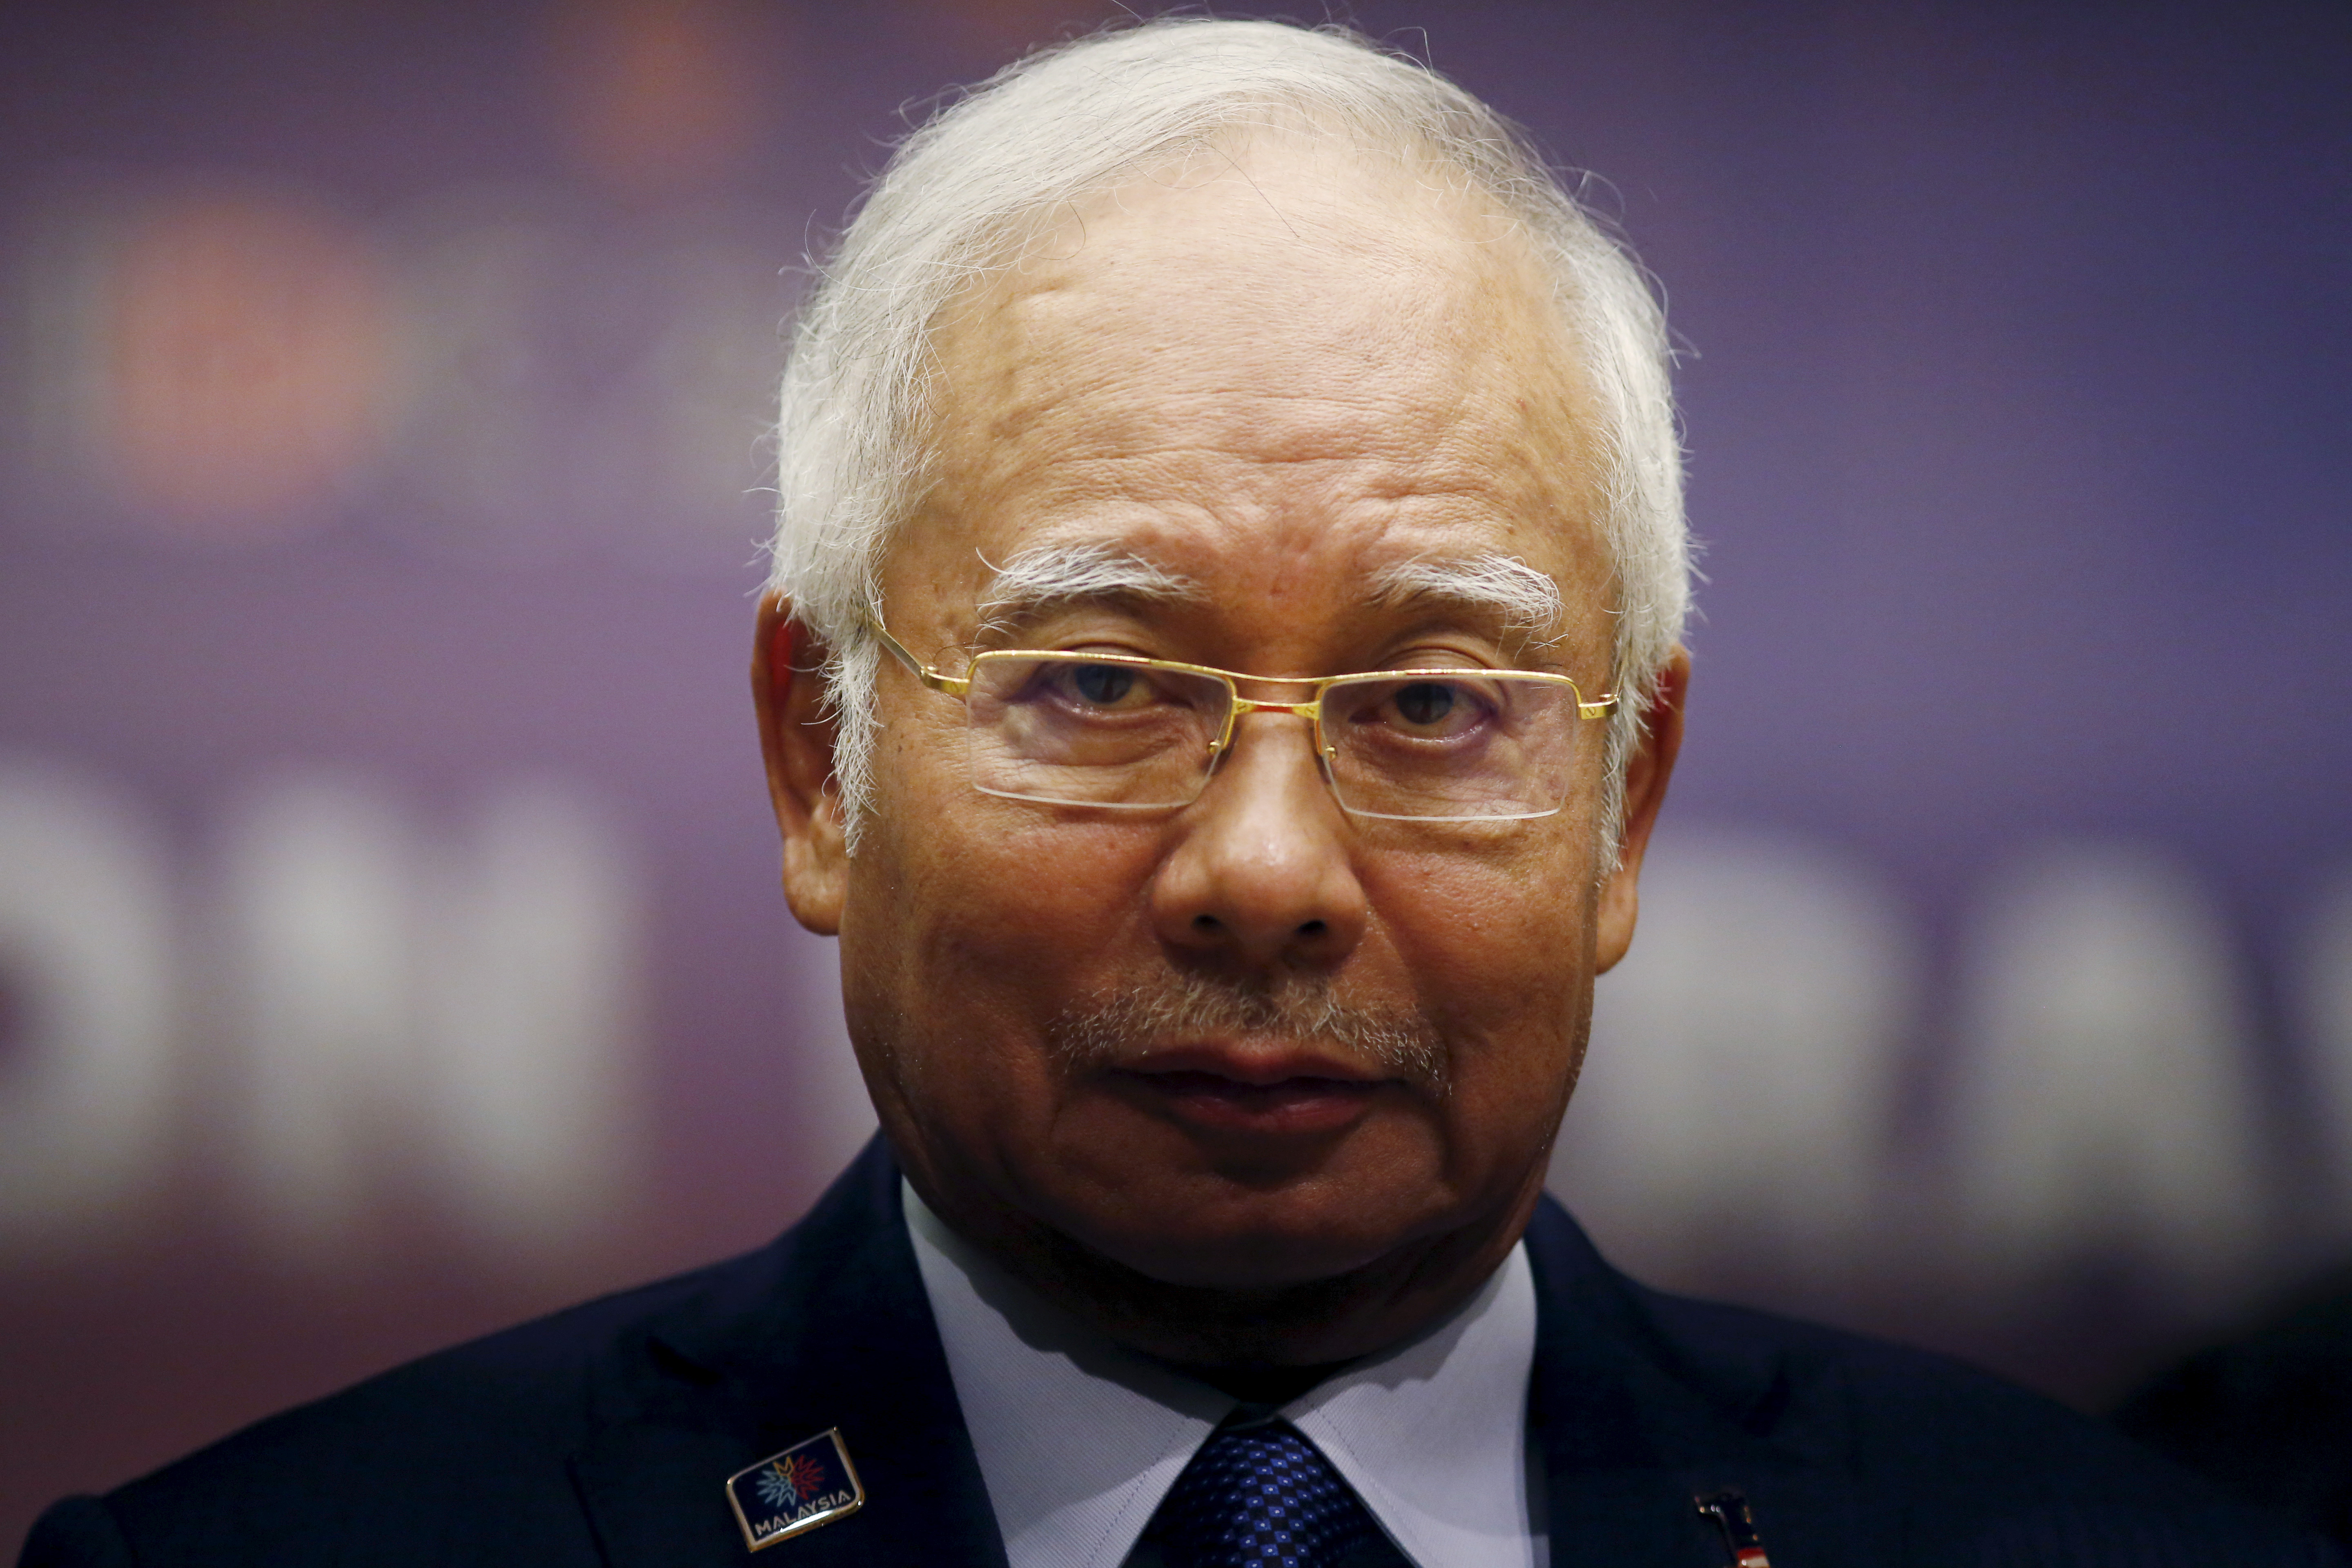 Malaysia's Prime Minister Najib Razak attends the opening of the International Conference on Deradicalisation and Countering Violent Extremism in Kuala Lumpur, Malaysia, January 25, 2016.